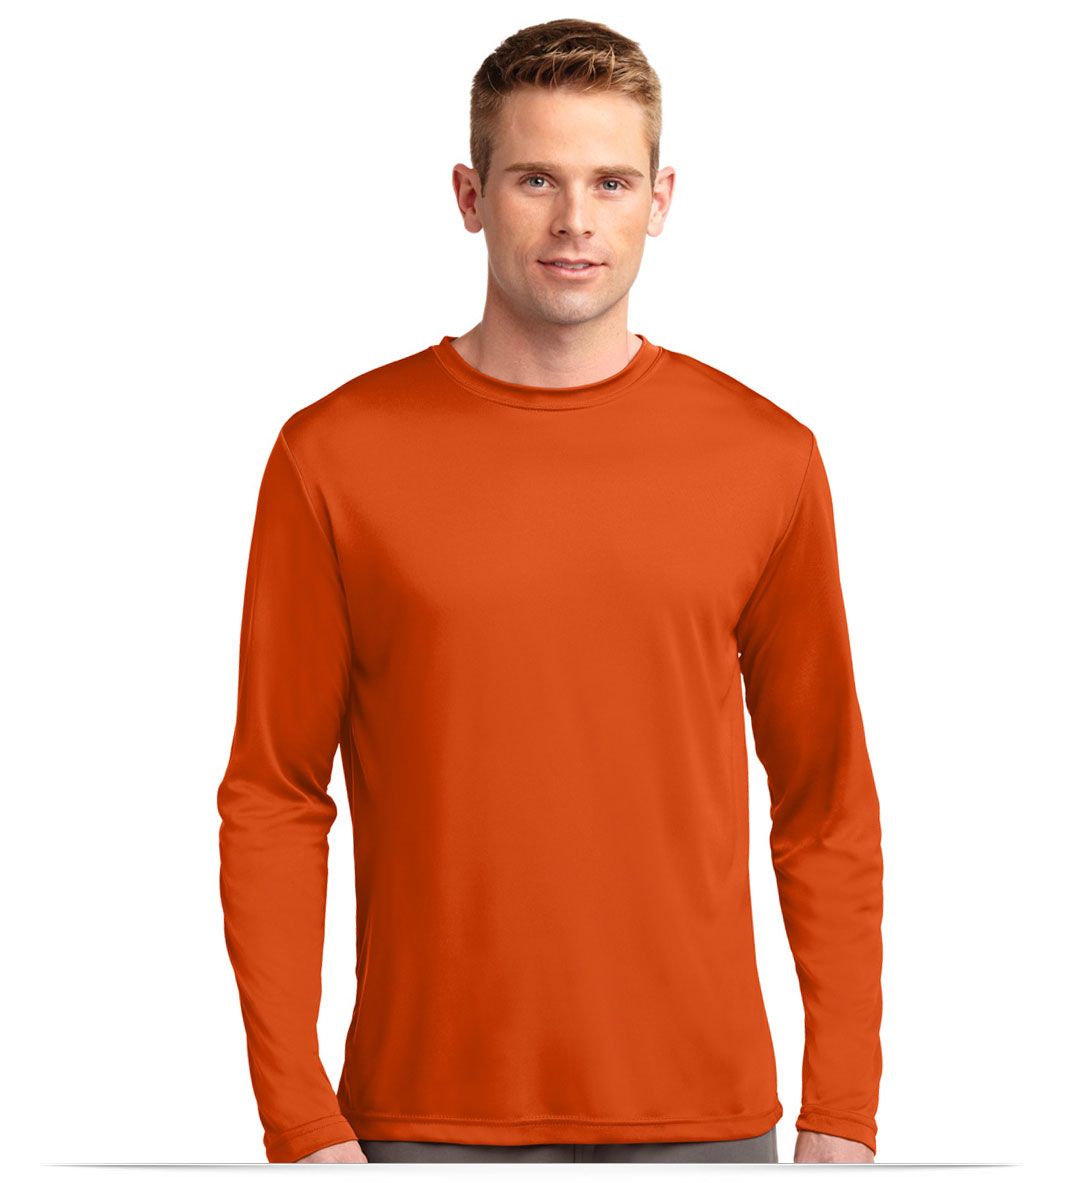 Customize Sport-Tek Long Sleeve Competitor Tee